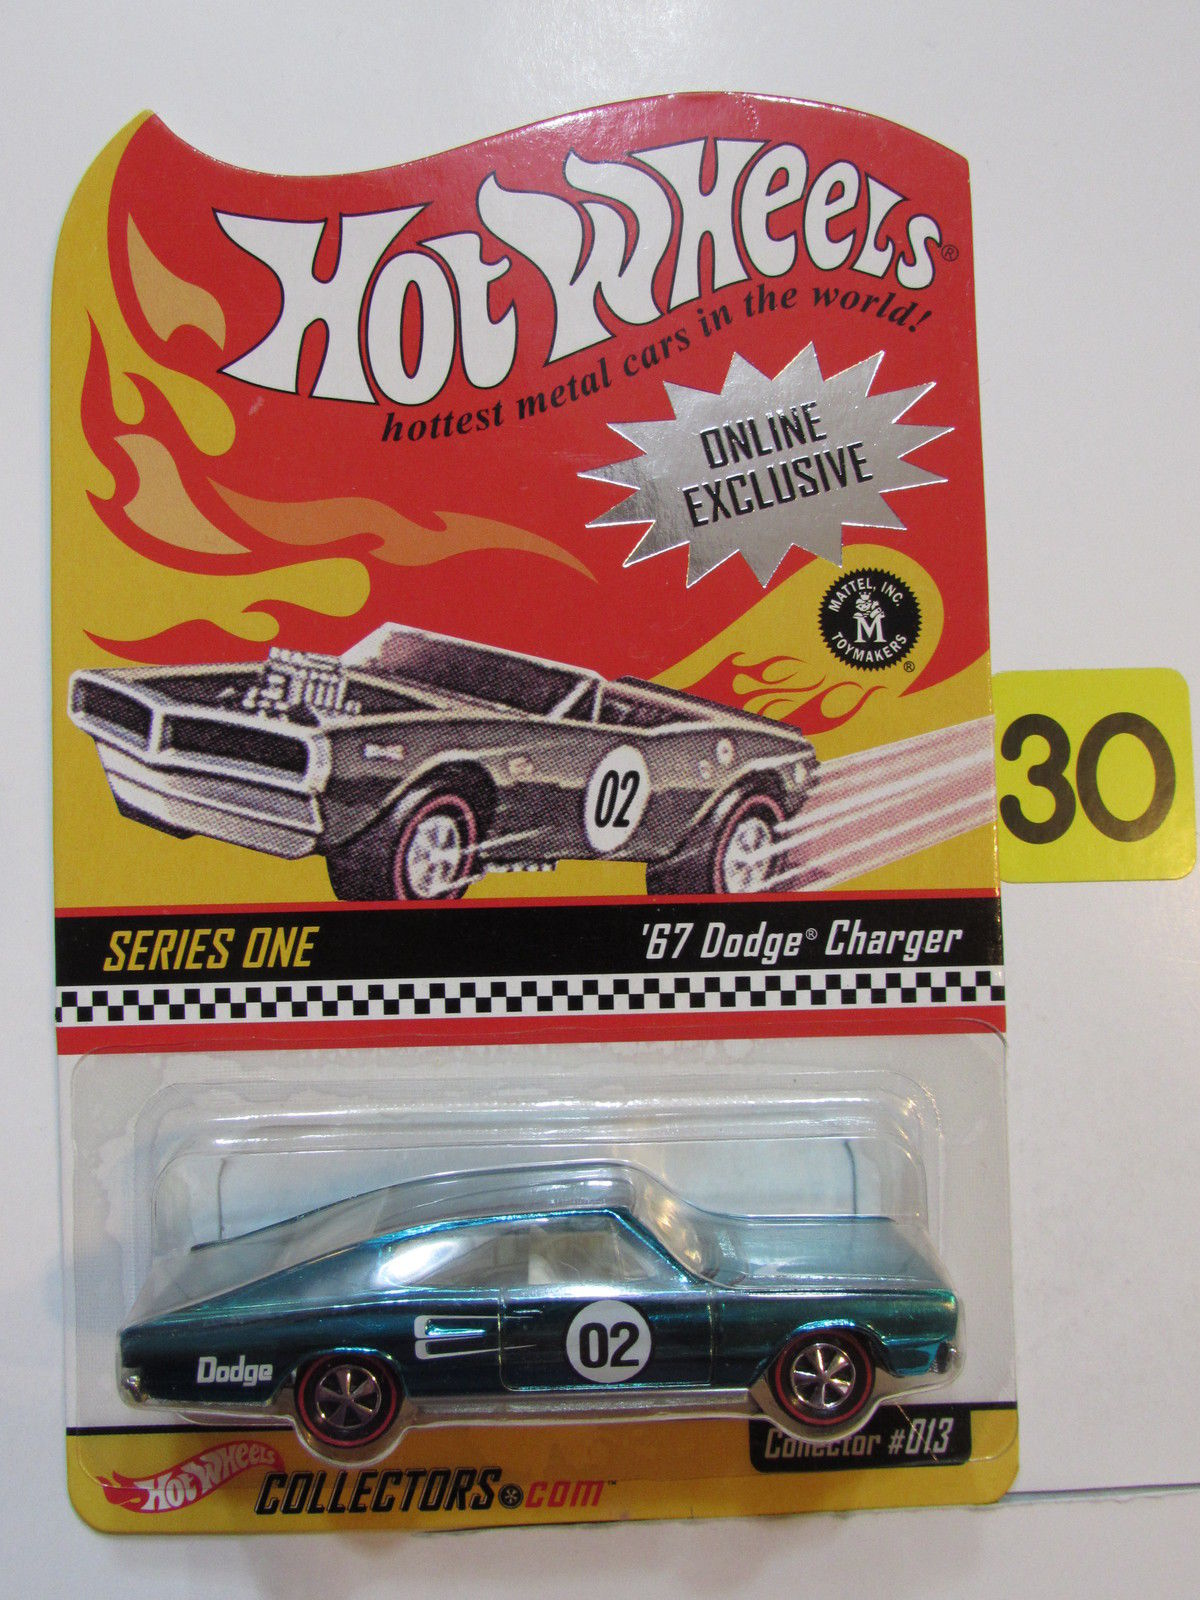 HOT WHEELS 2001 ONLINE EXCLUSIVE SERIES ONE COLLECTOR #013 - '67 DODGE CHARGER